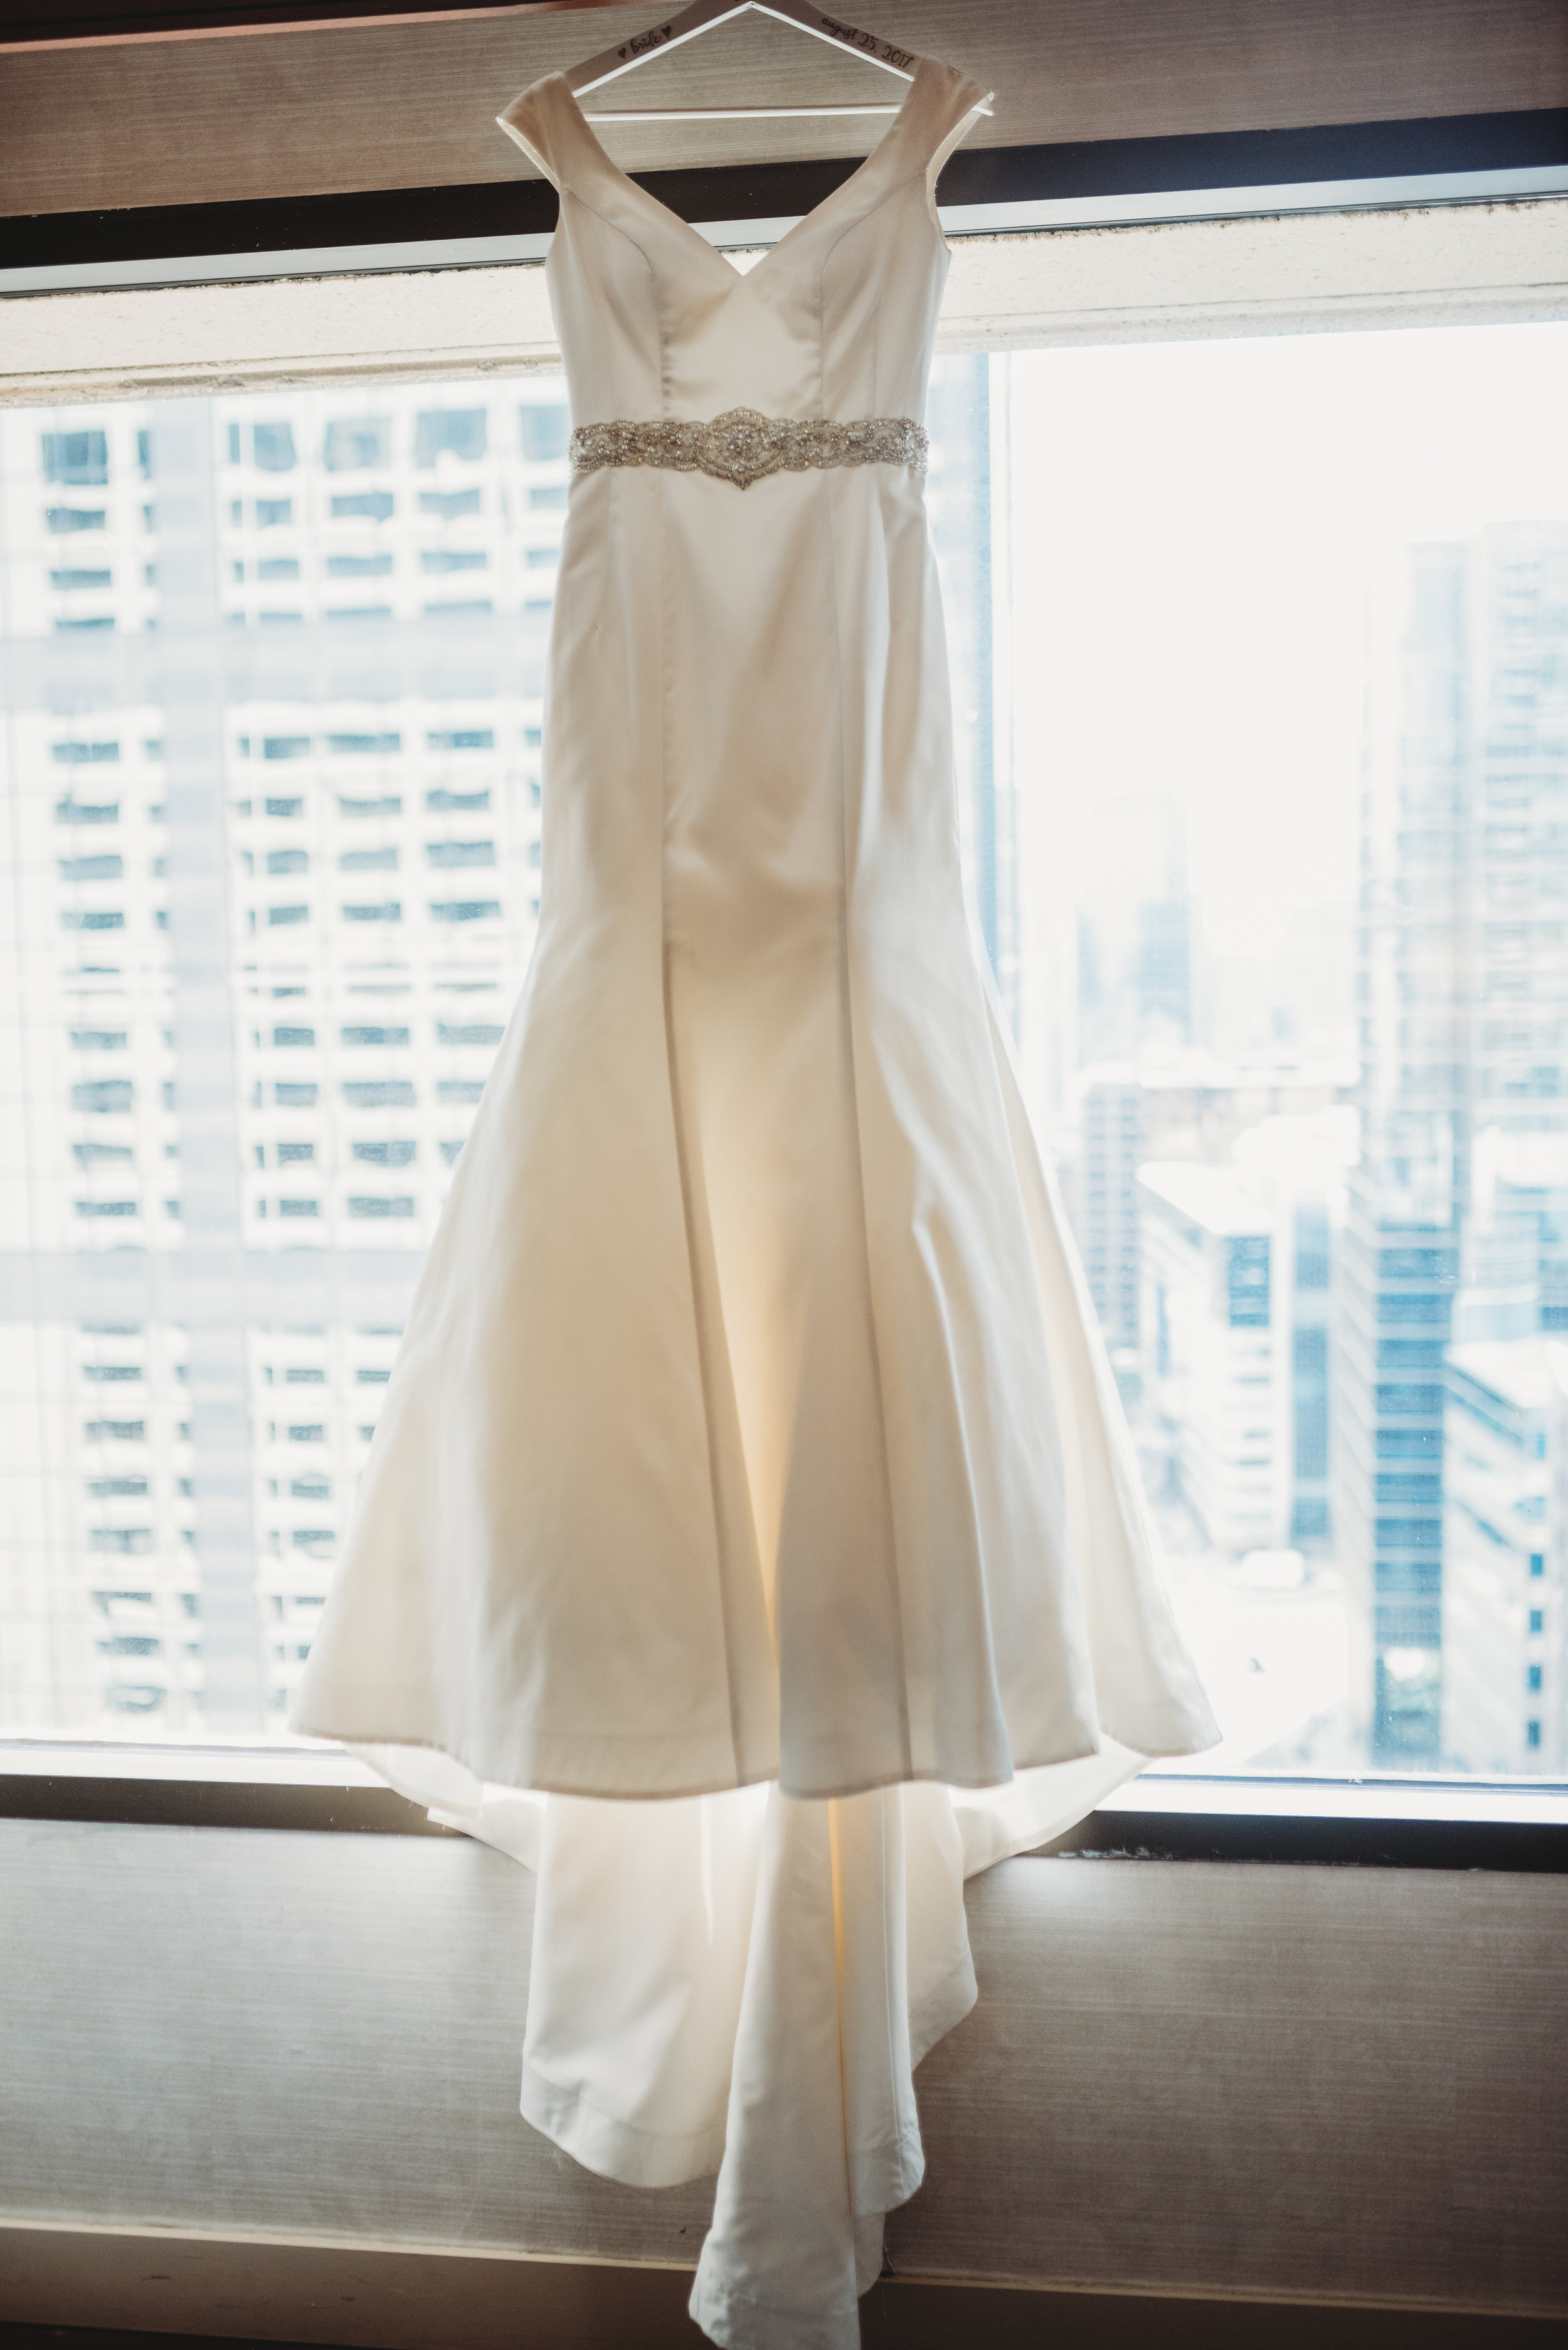 wedding-dress-bridal-getting-ready-photos-eglington-grand-wedding-by-willow-birch-photo-toronto-documentary-wedding-photographers.jpg